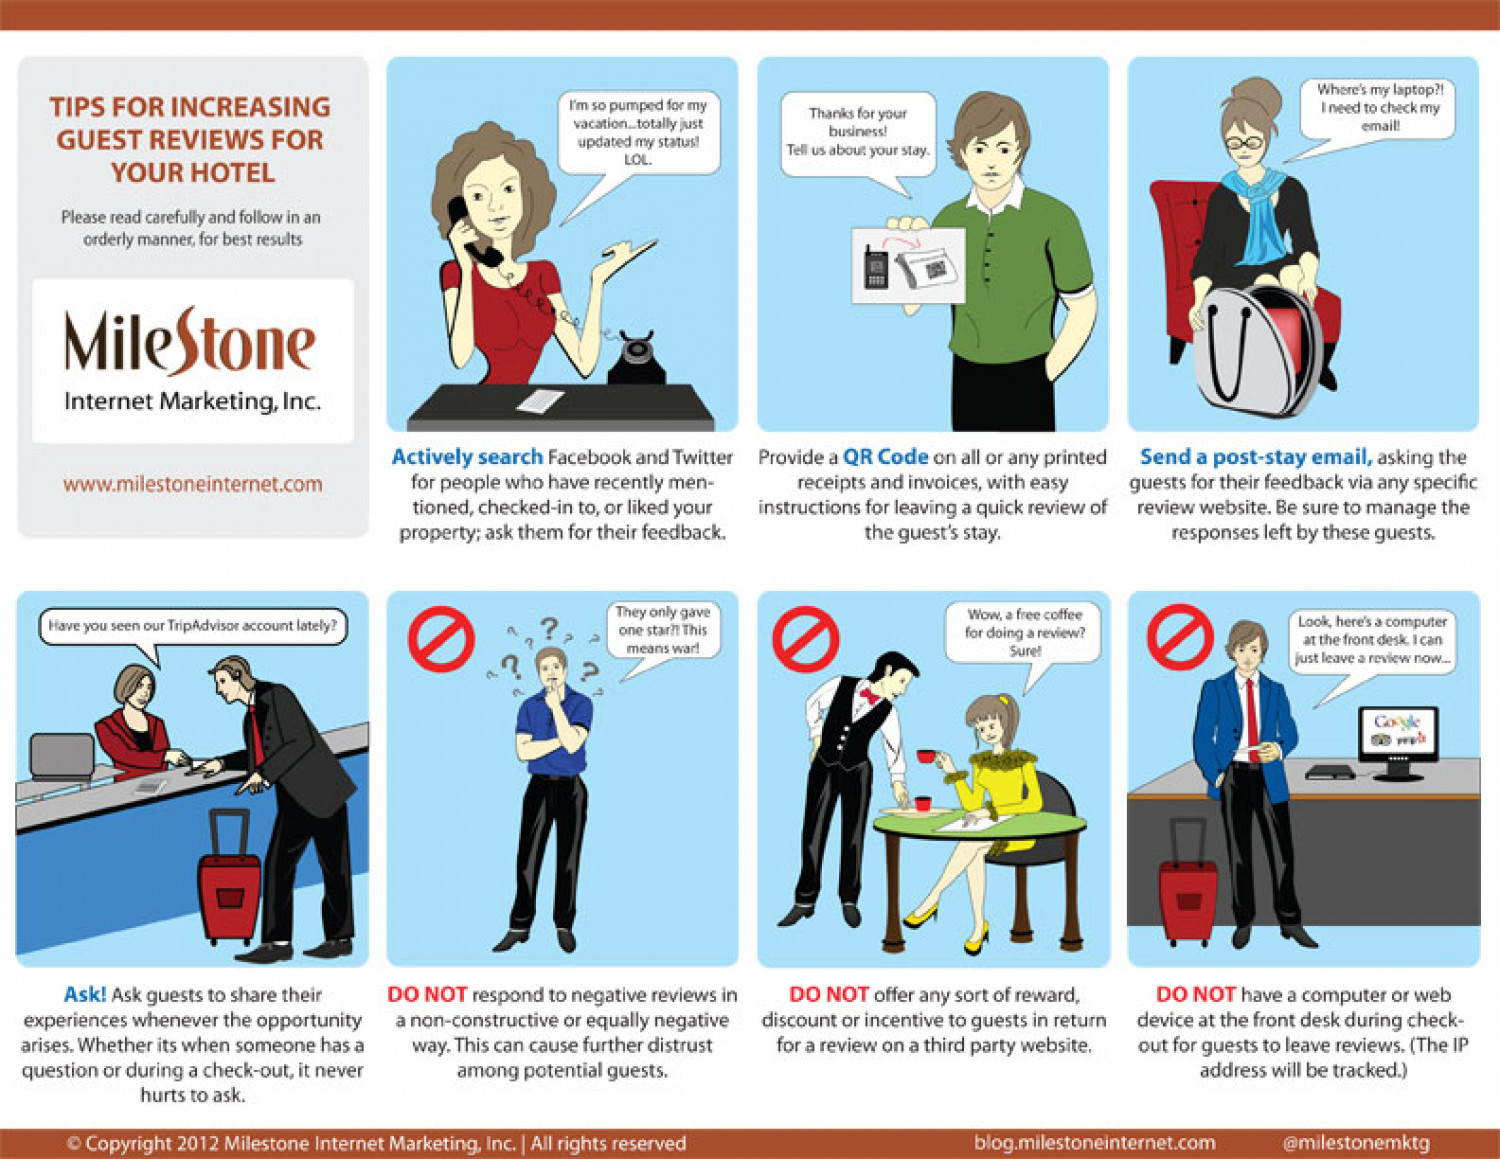 Tips for Increasing Guest Reviews for Your Hotel Infographic